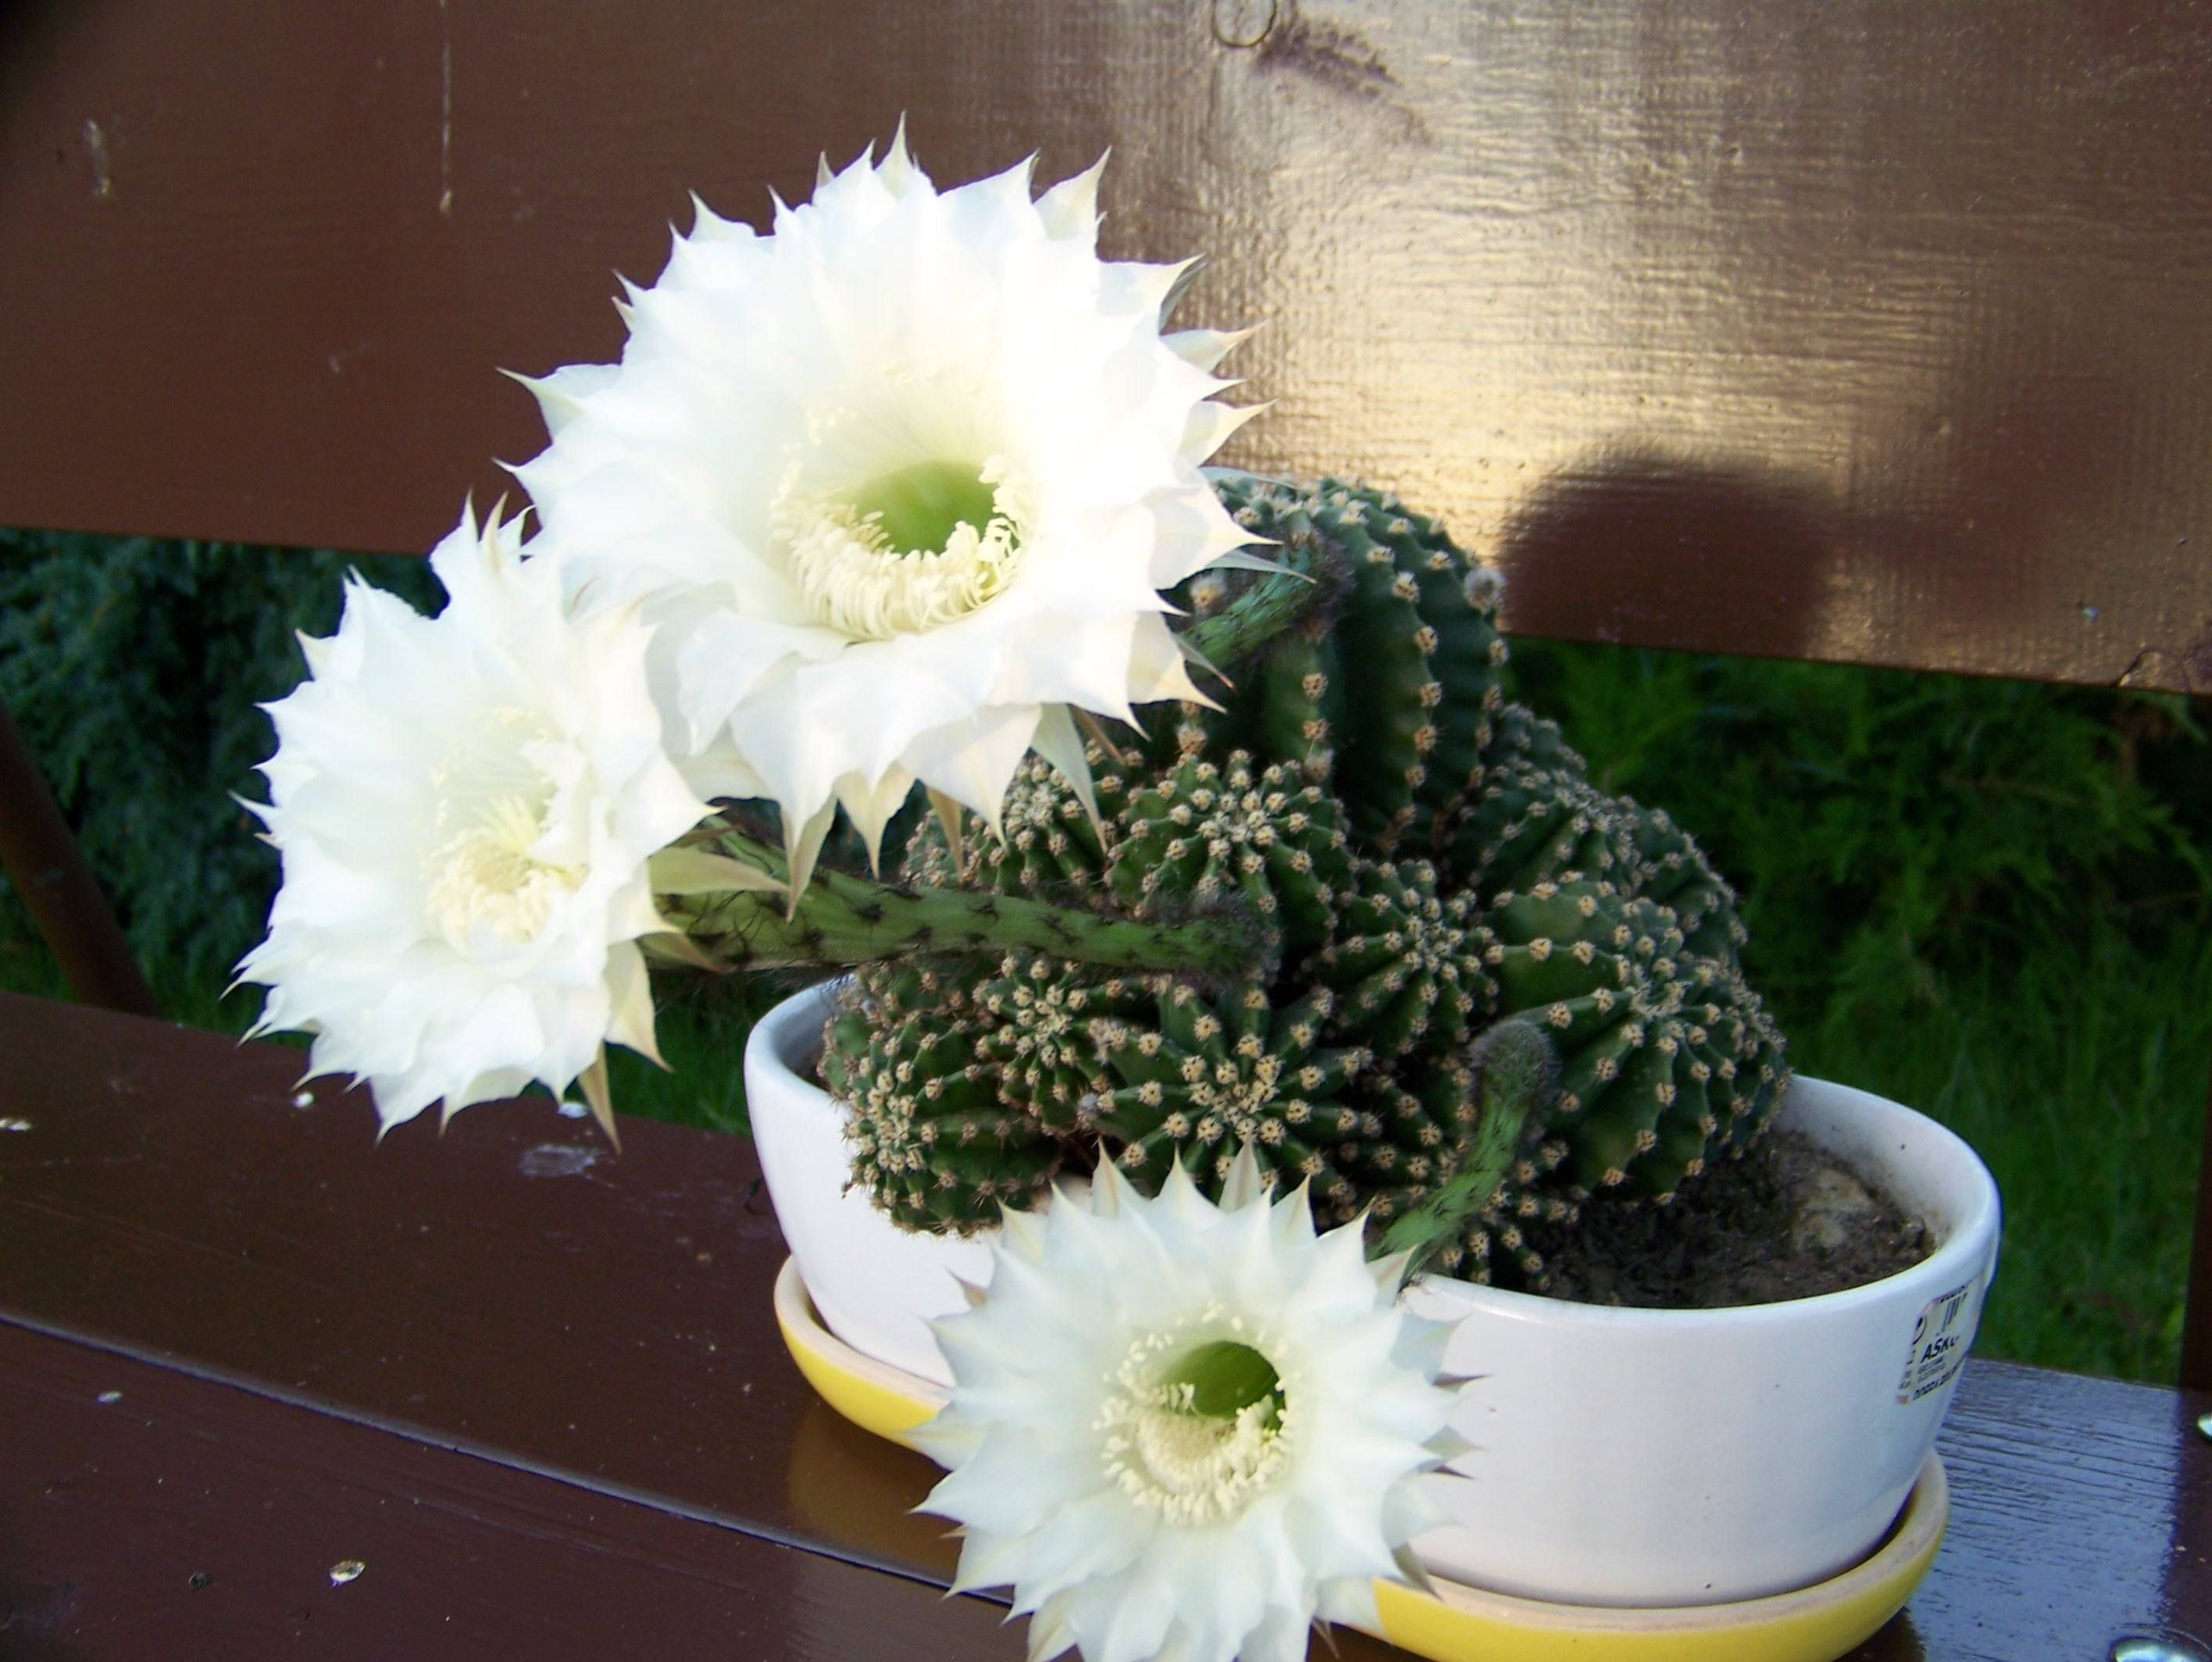 Caught My Cactus Blooming Usually Only One Flower Once A Year